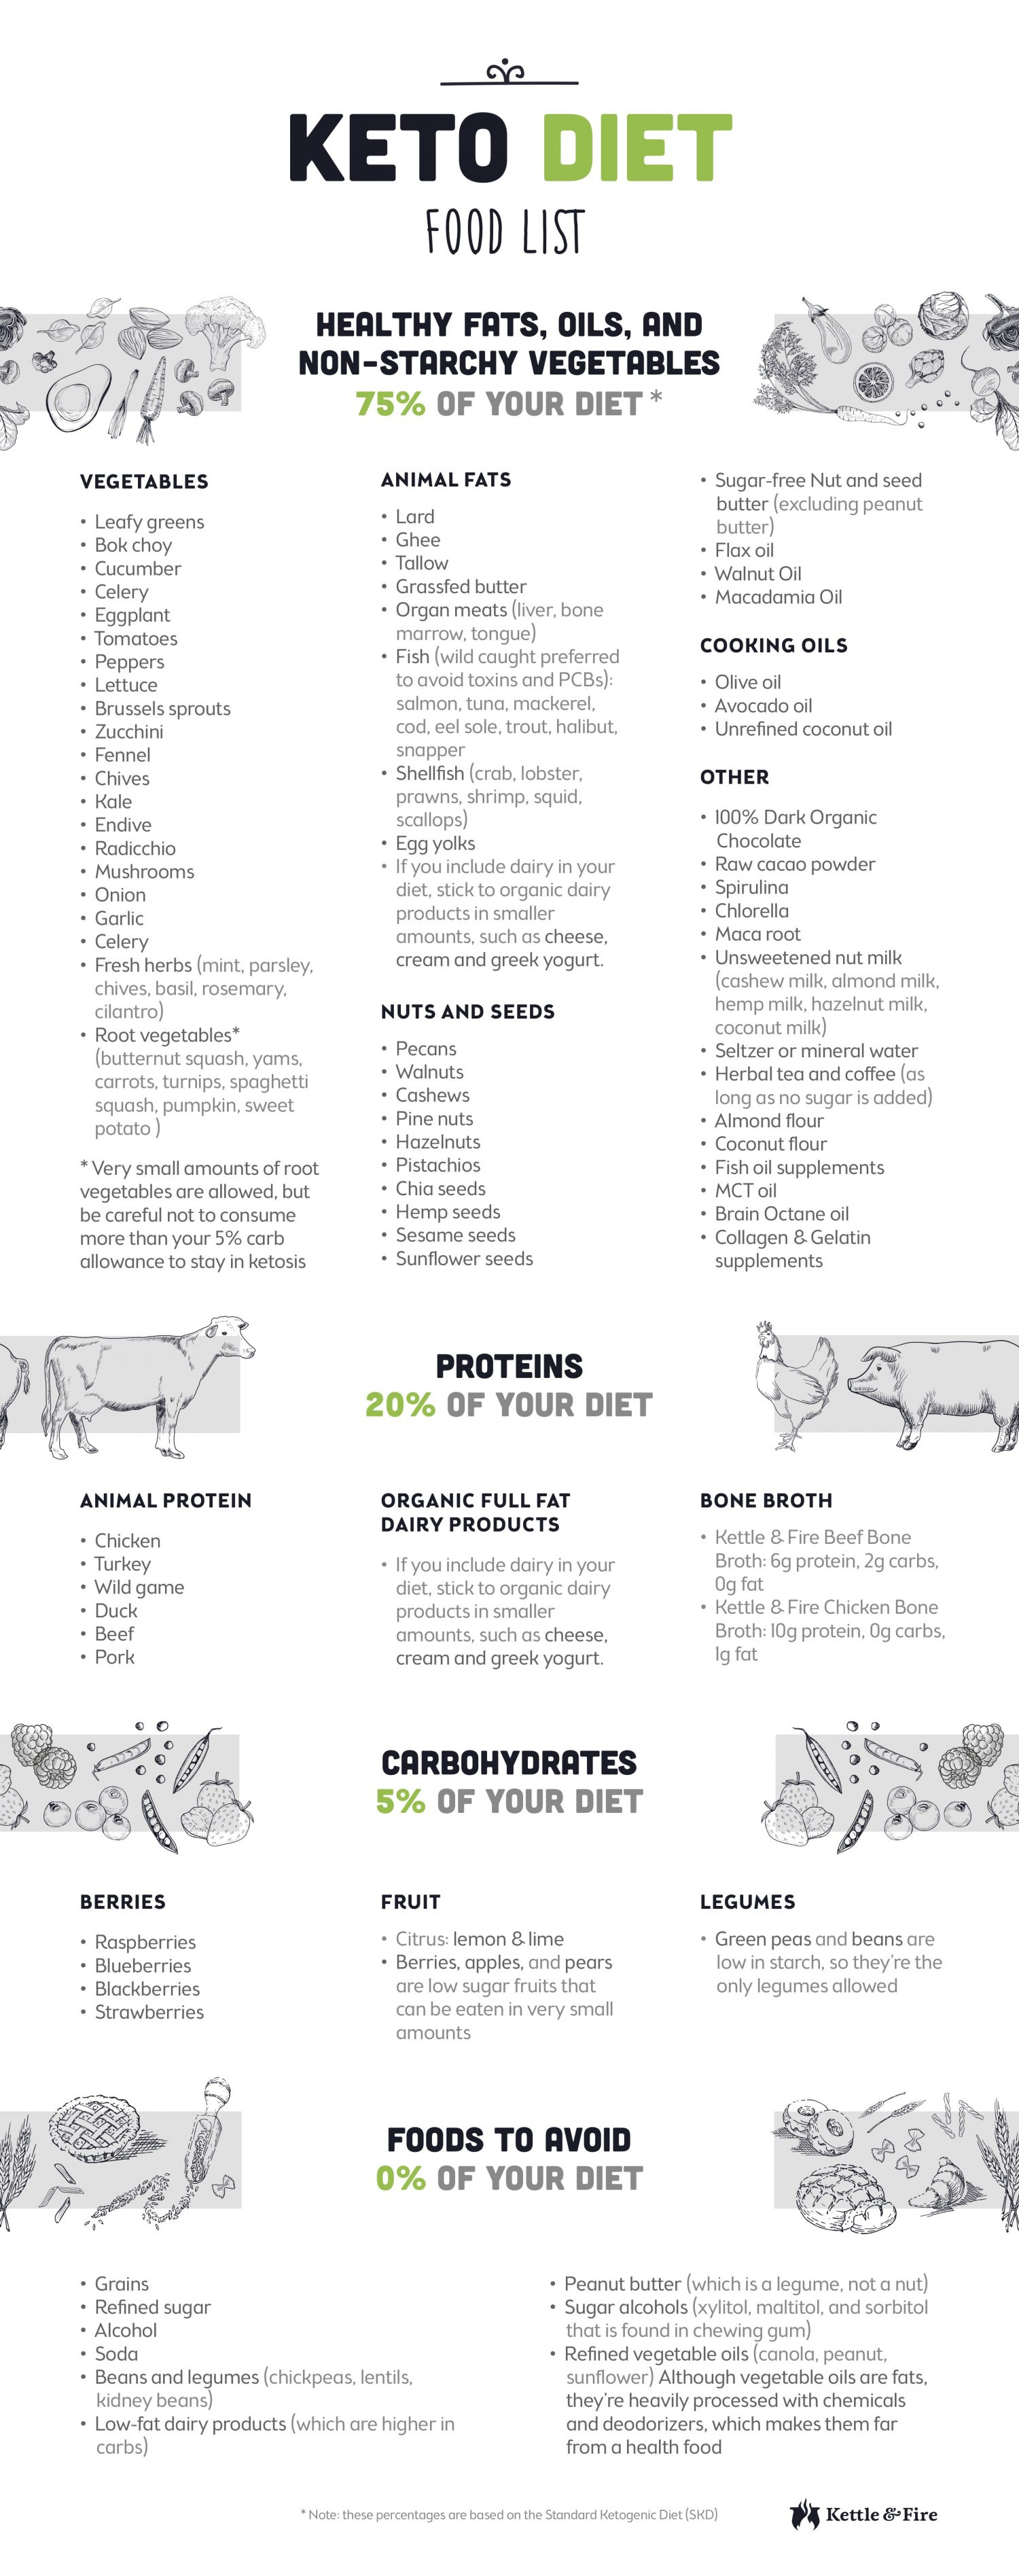 Keto Meal Plan Spreadsheet Regarding Keto Diet Food List For Ultimate Fat Burning  Perfect Keto Blog